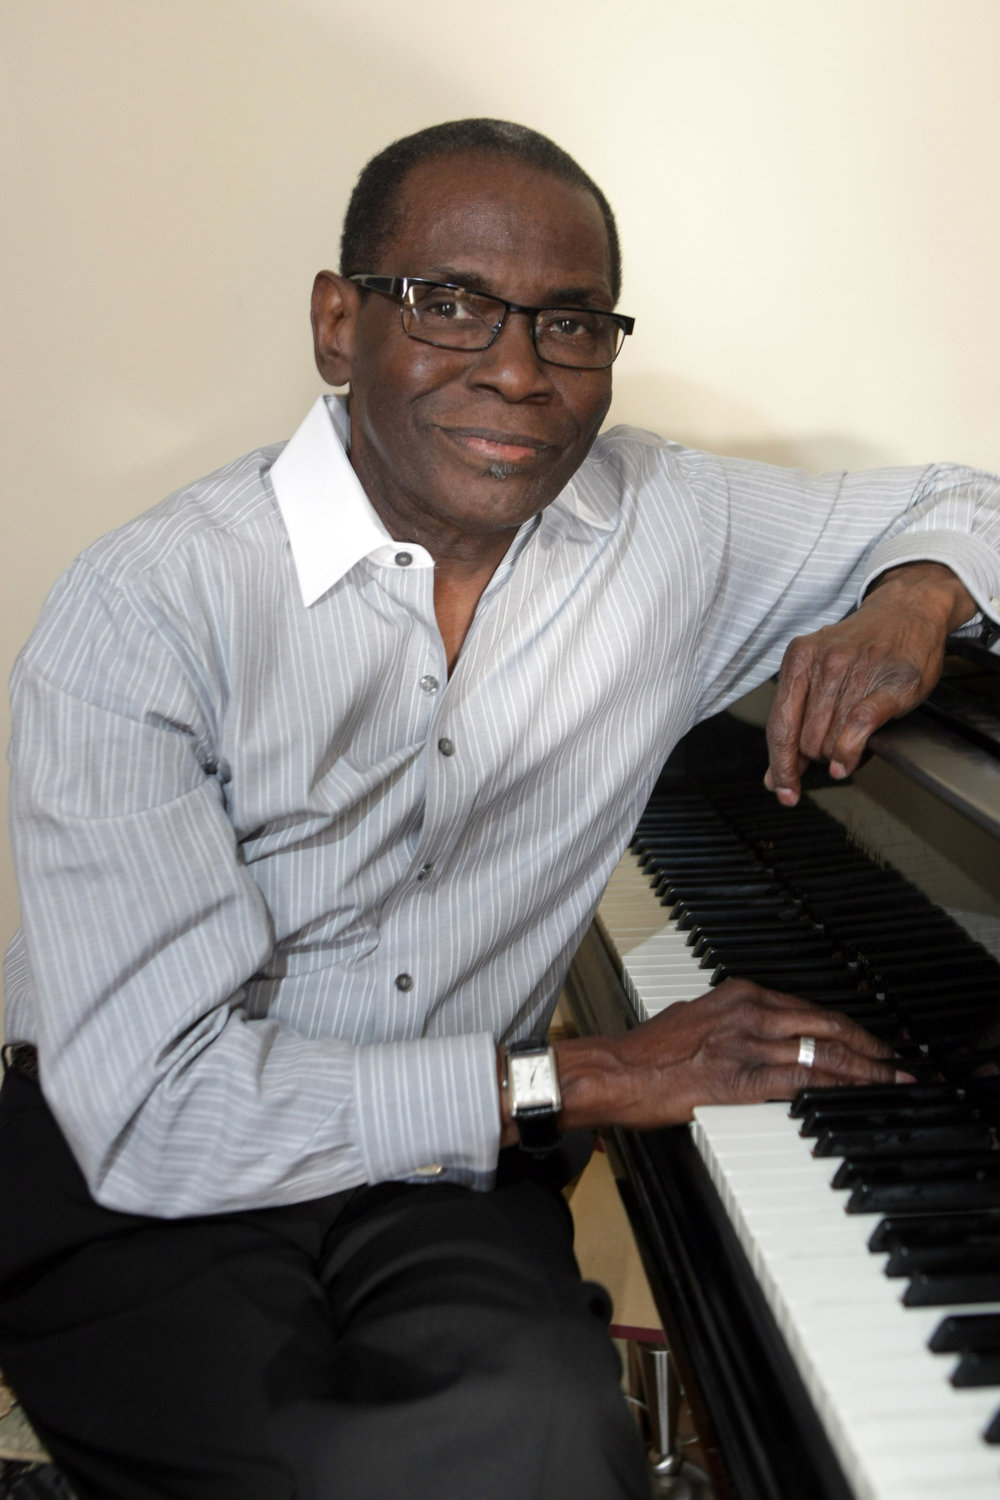 George Cables Promo Photo.jpg